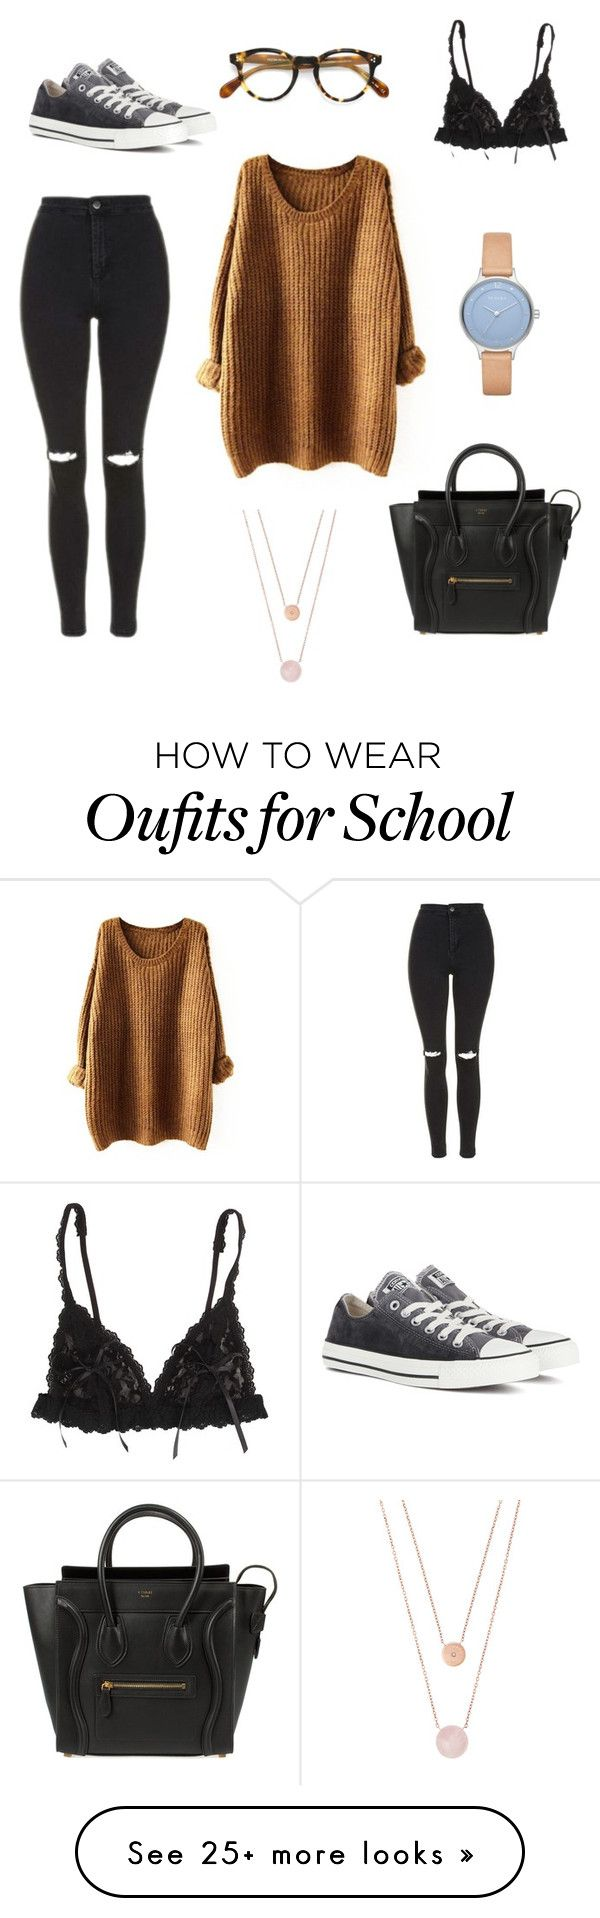 """School #2"" by lalalallalala9 on Polyvore featuring Hanky Panky, Topshop, CÉLINE, Skagen, Michael Kors, Converse and Oliver Peoples"